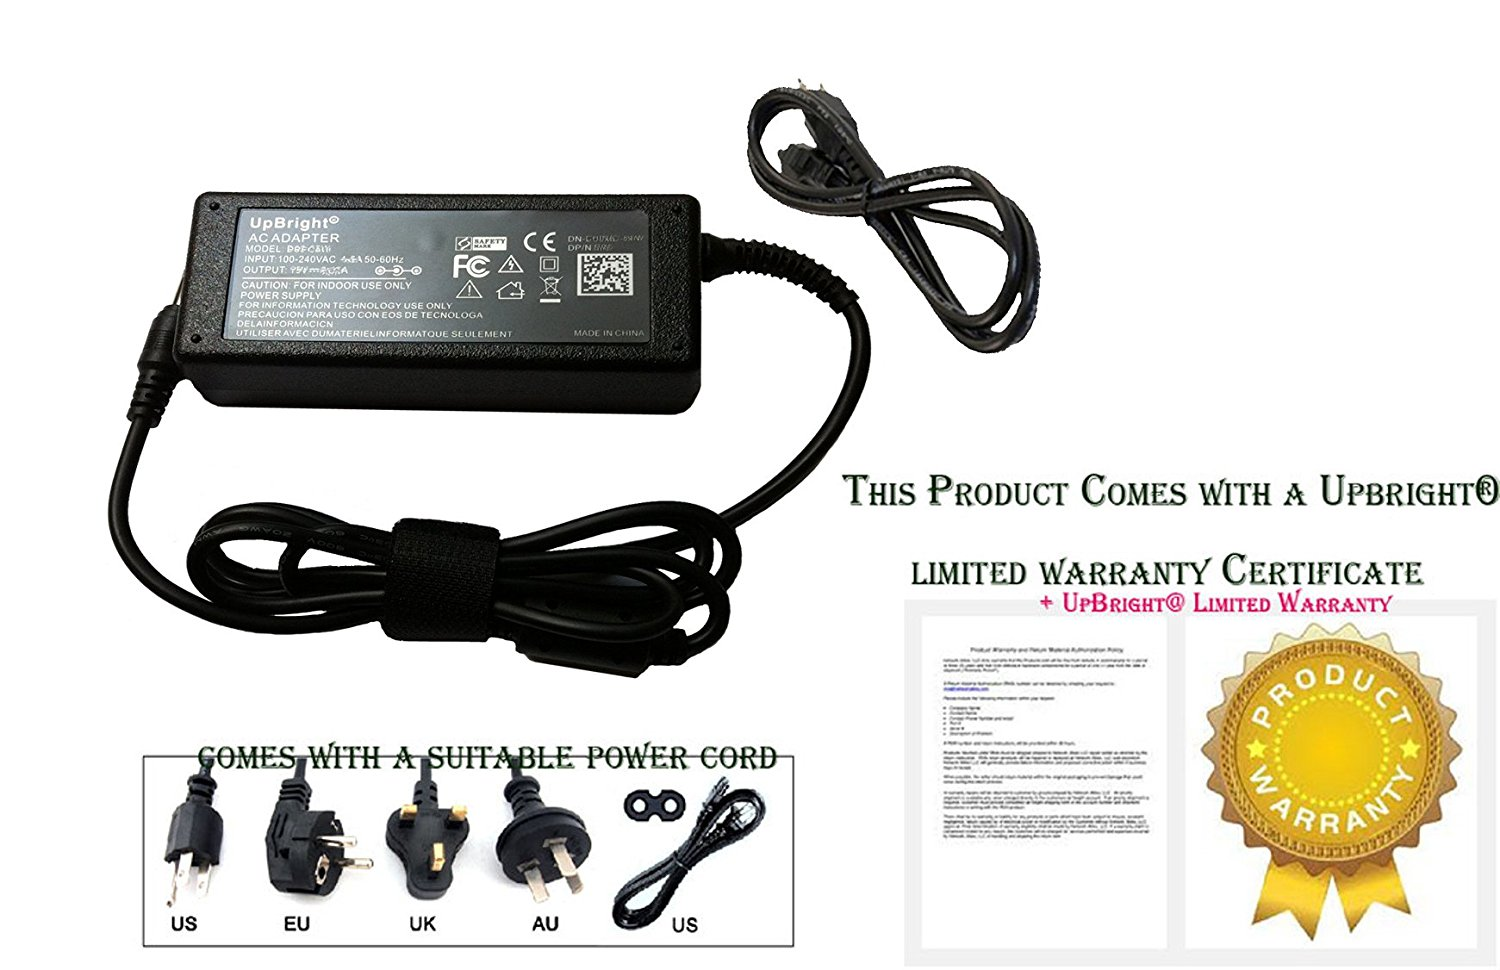 ABLEGRID AC//DC Adapter for JmGO G1 G1s LED Projector Multi-Media Player and Smart Home Theater System Power Supply Cord Cable PS Battery Charger Mains PSU